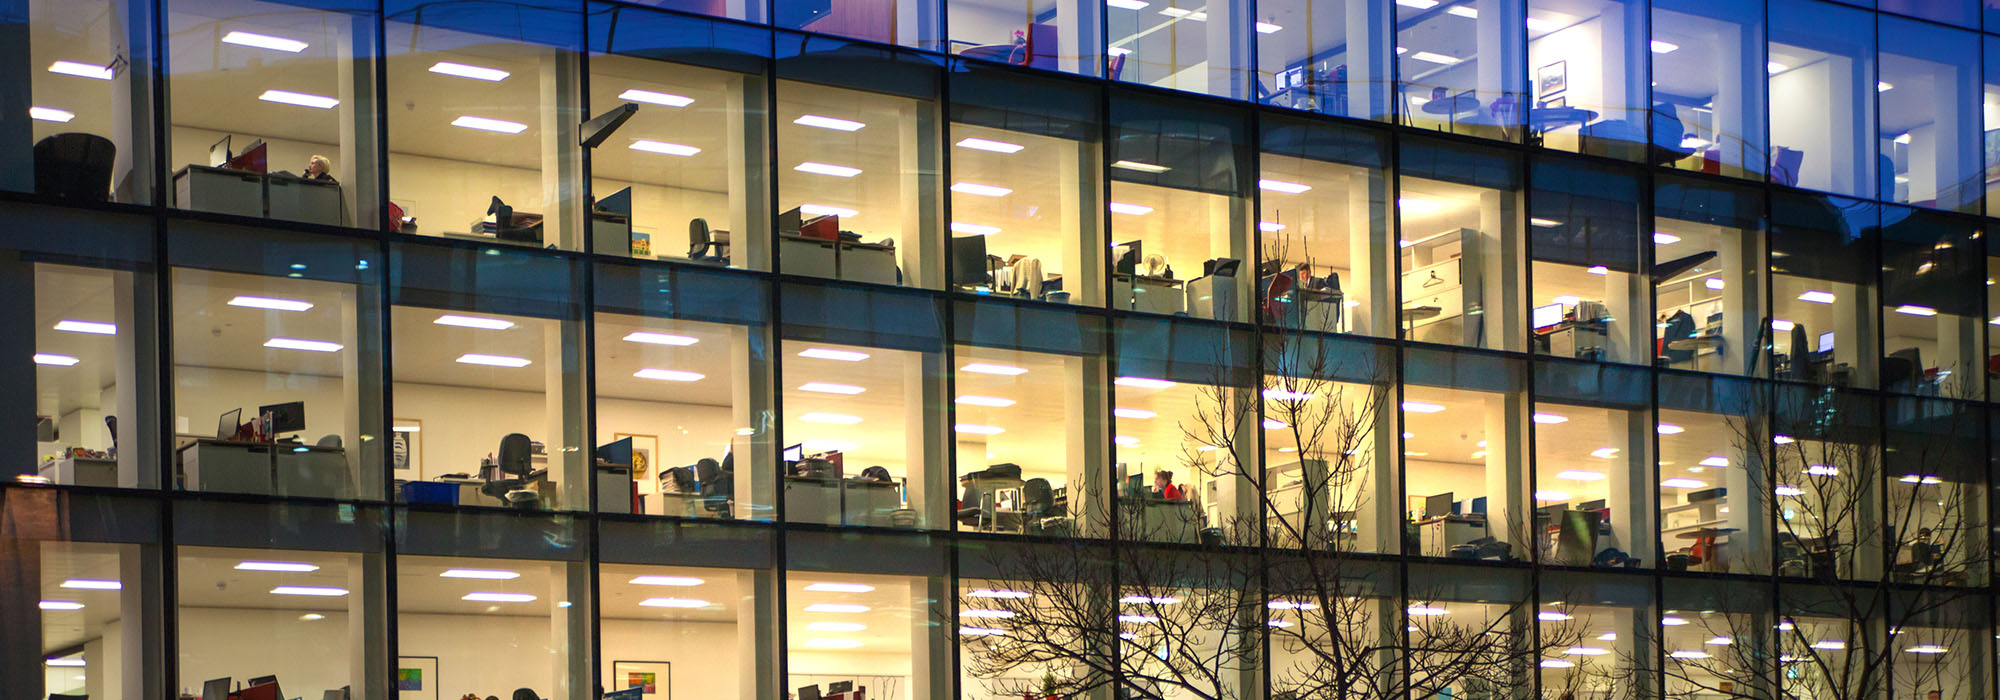 Late office workers